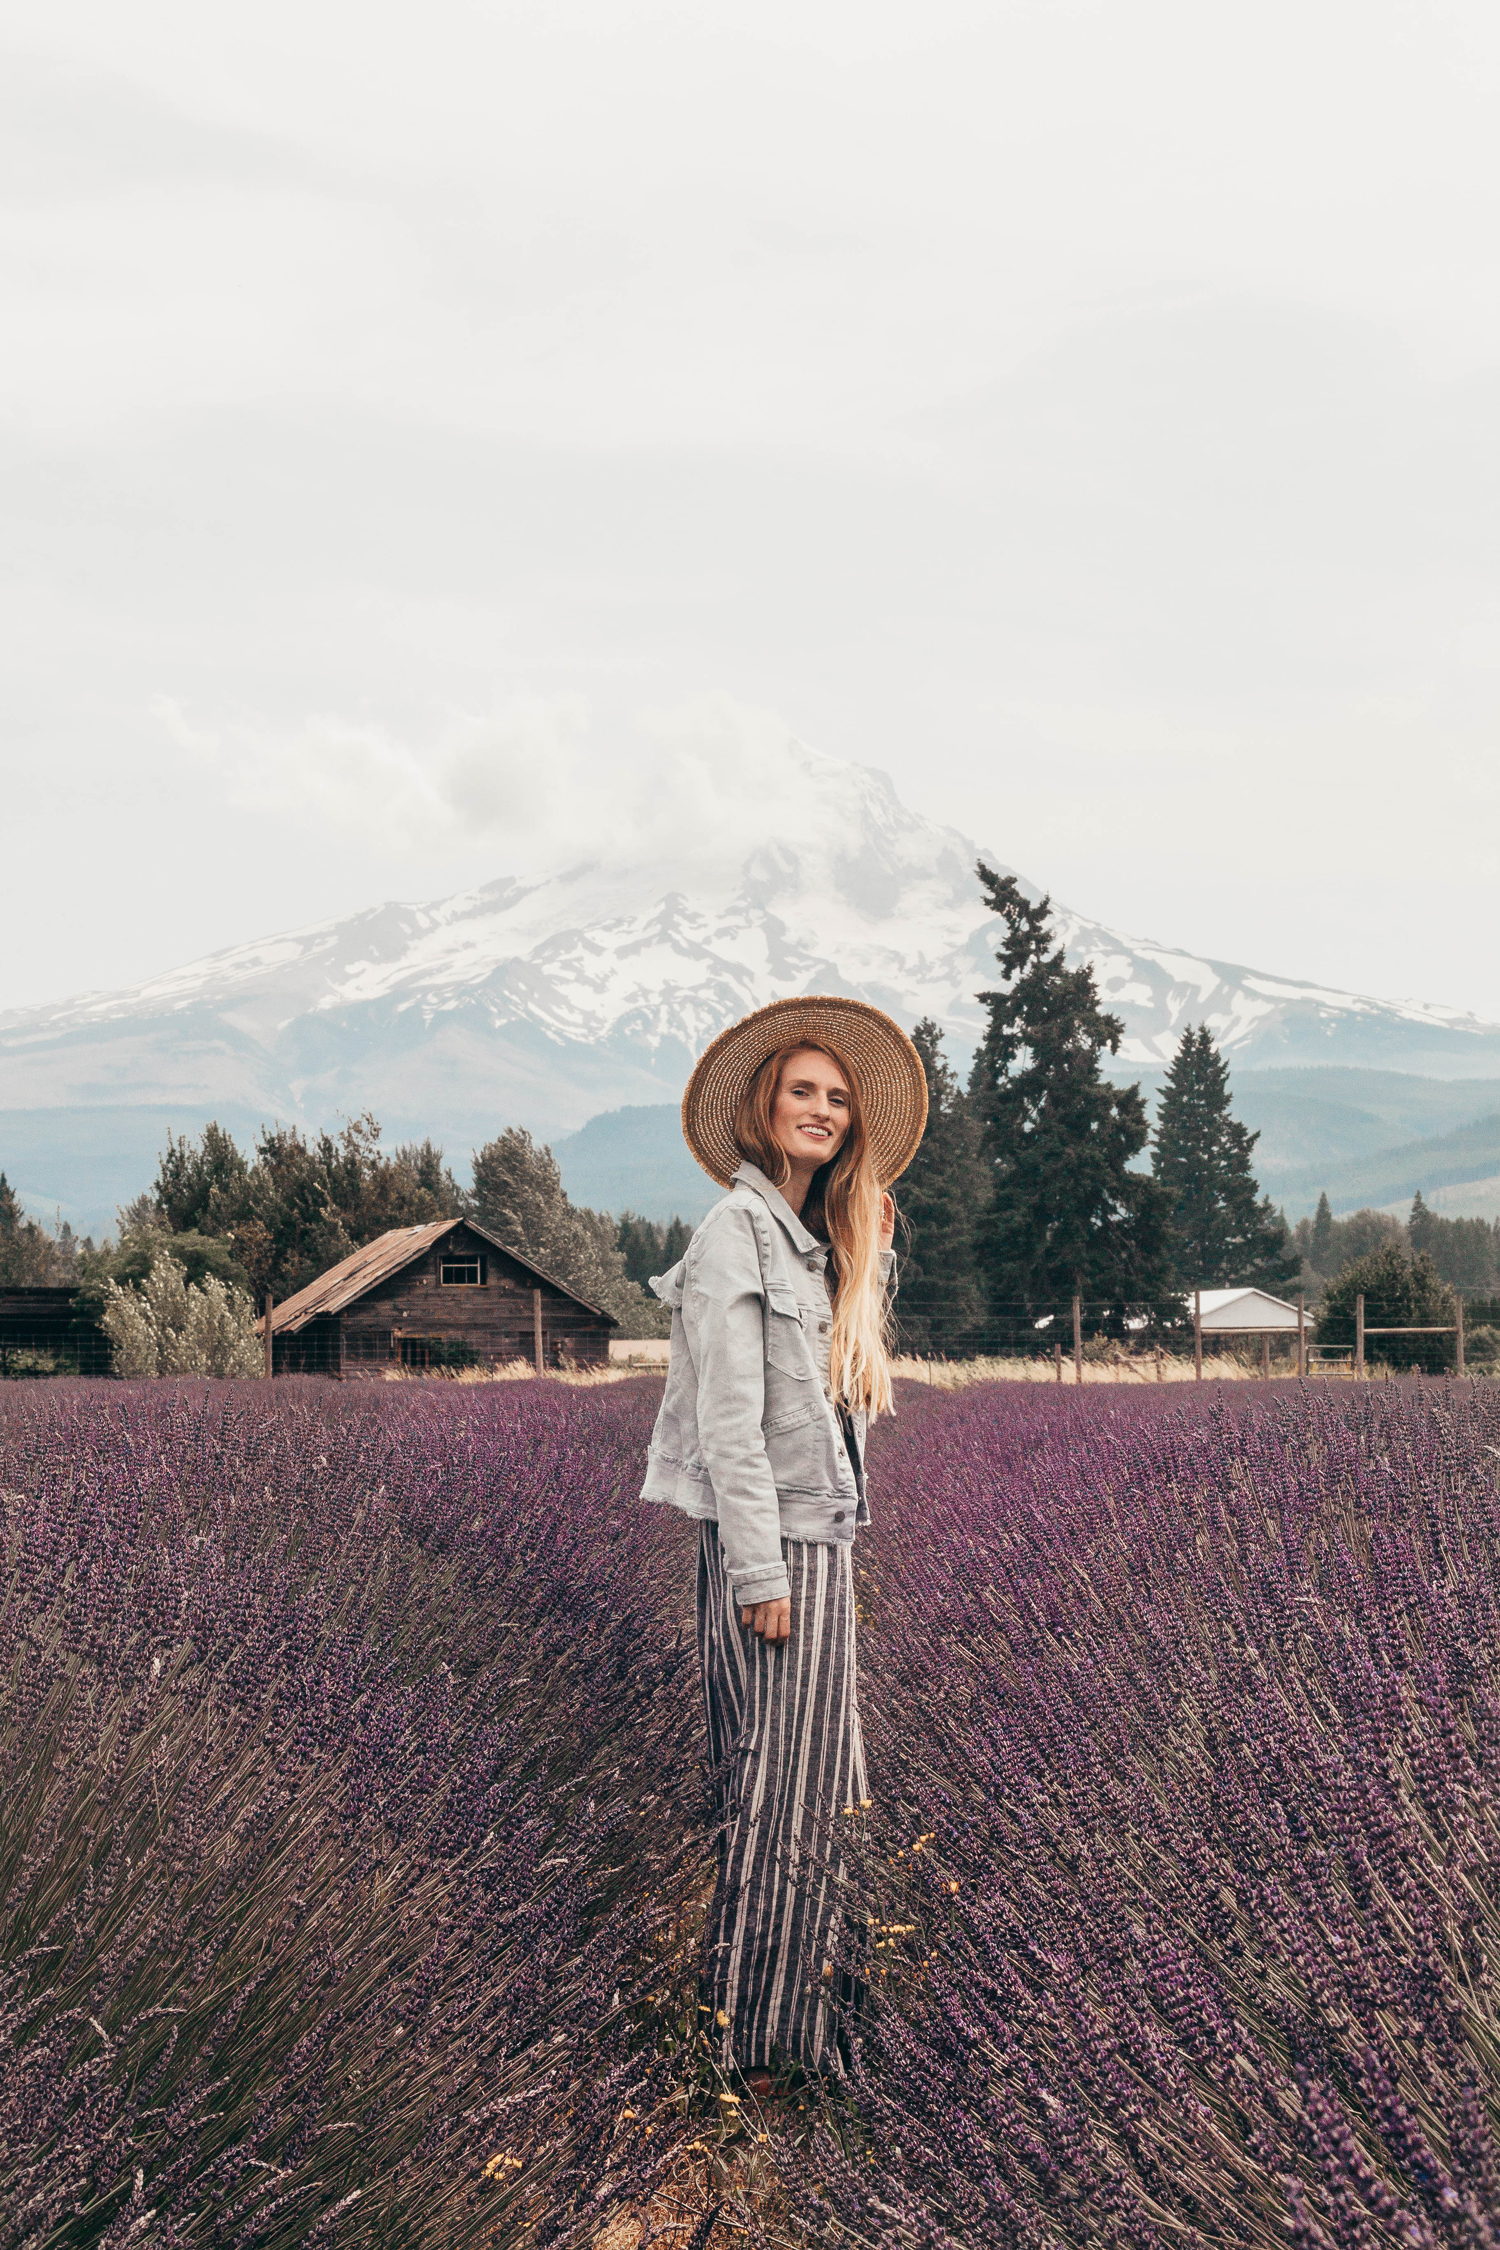 Mt. Hood Lavender Field Fruit Loop Flower Garden Hood River